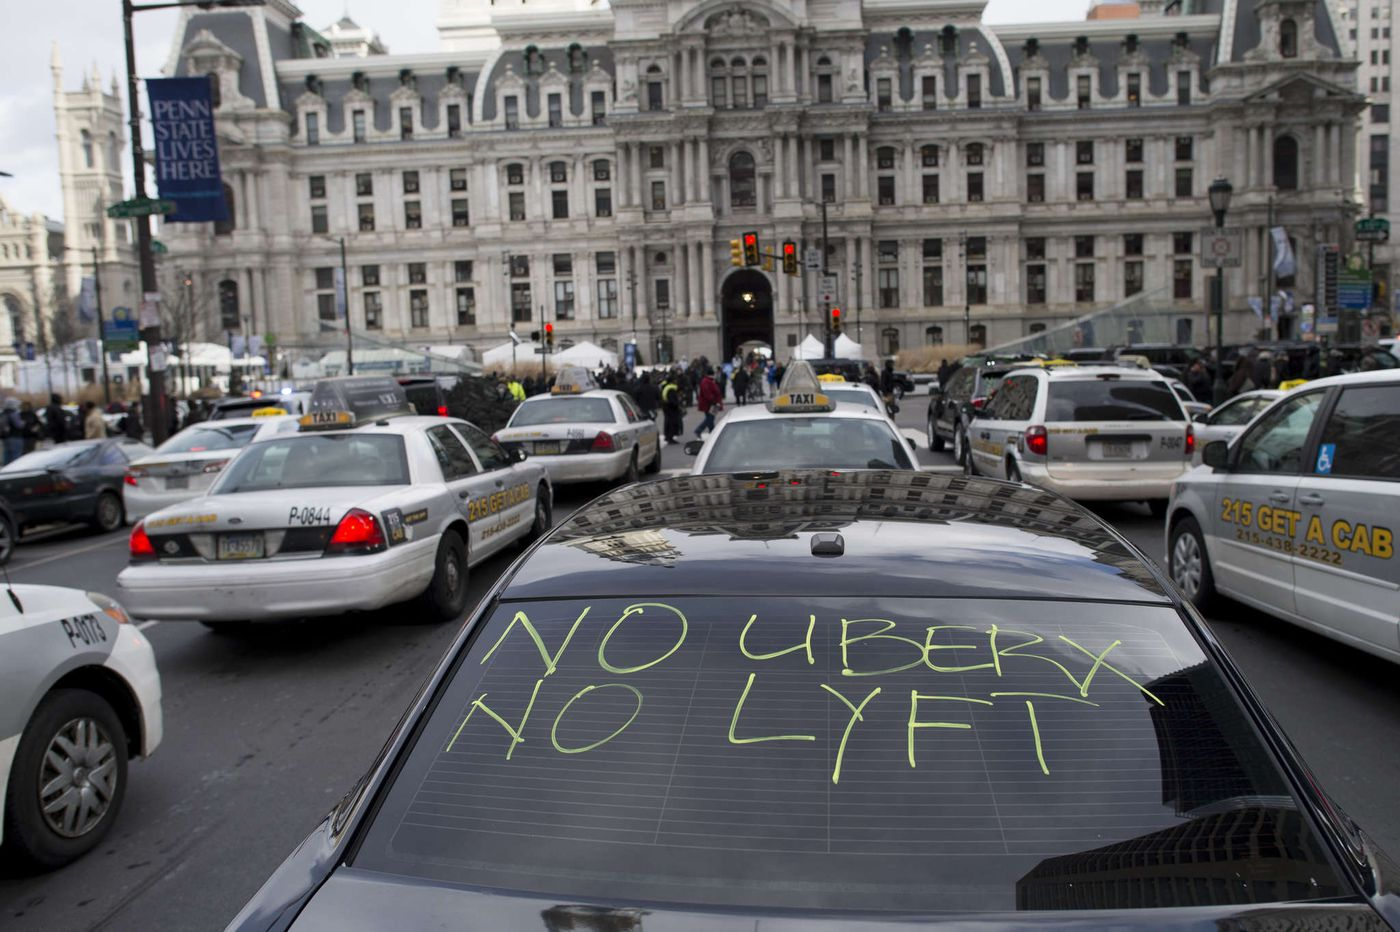 Philly Uber and Lyft drivers will join a global day of action on Wednesday